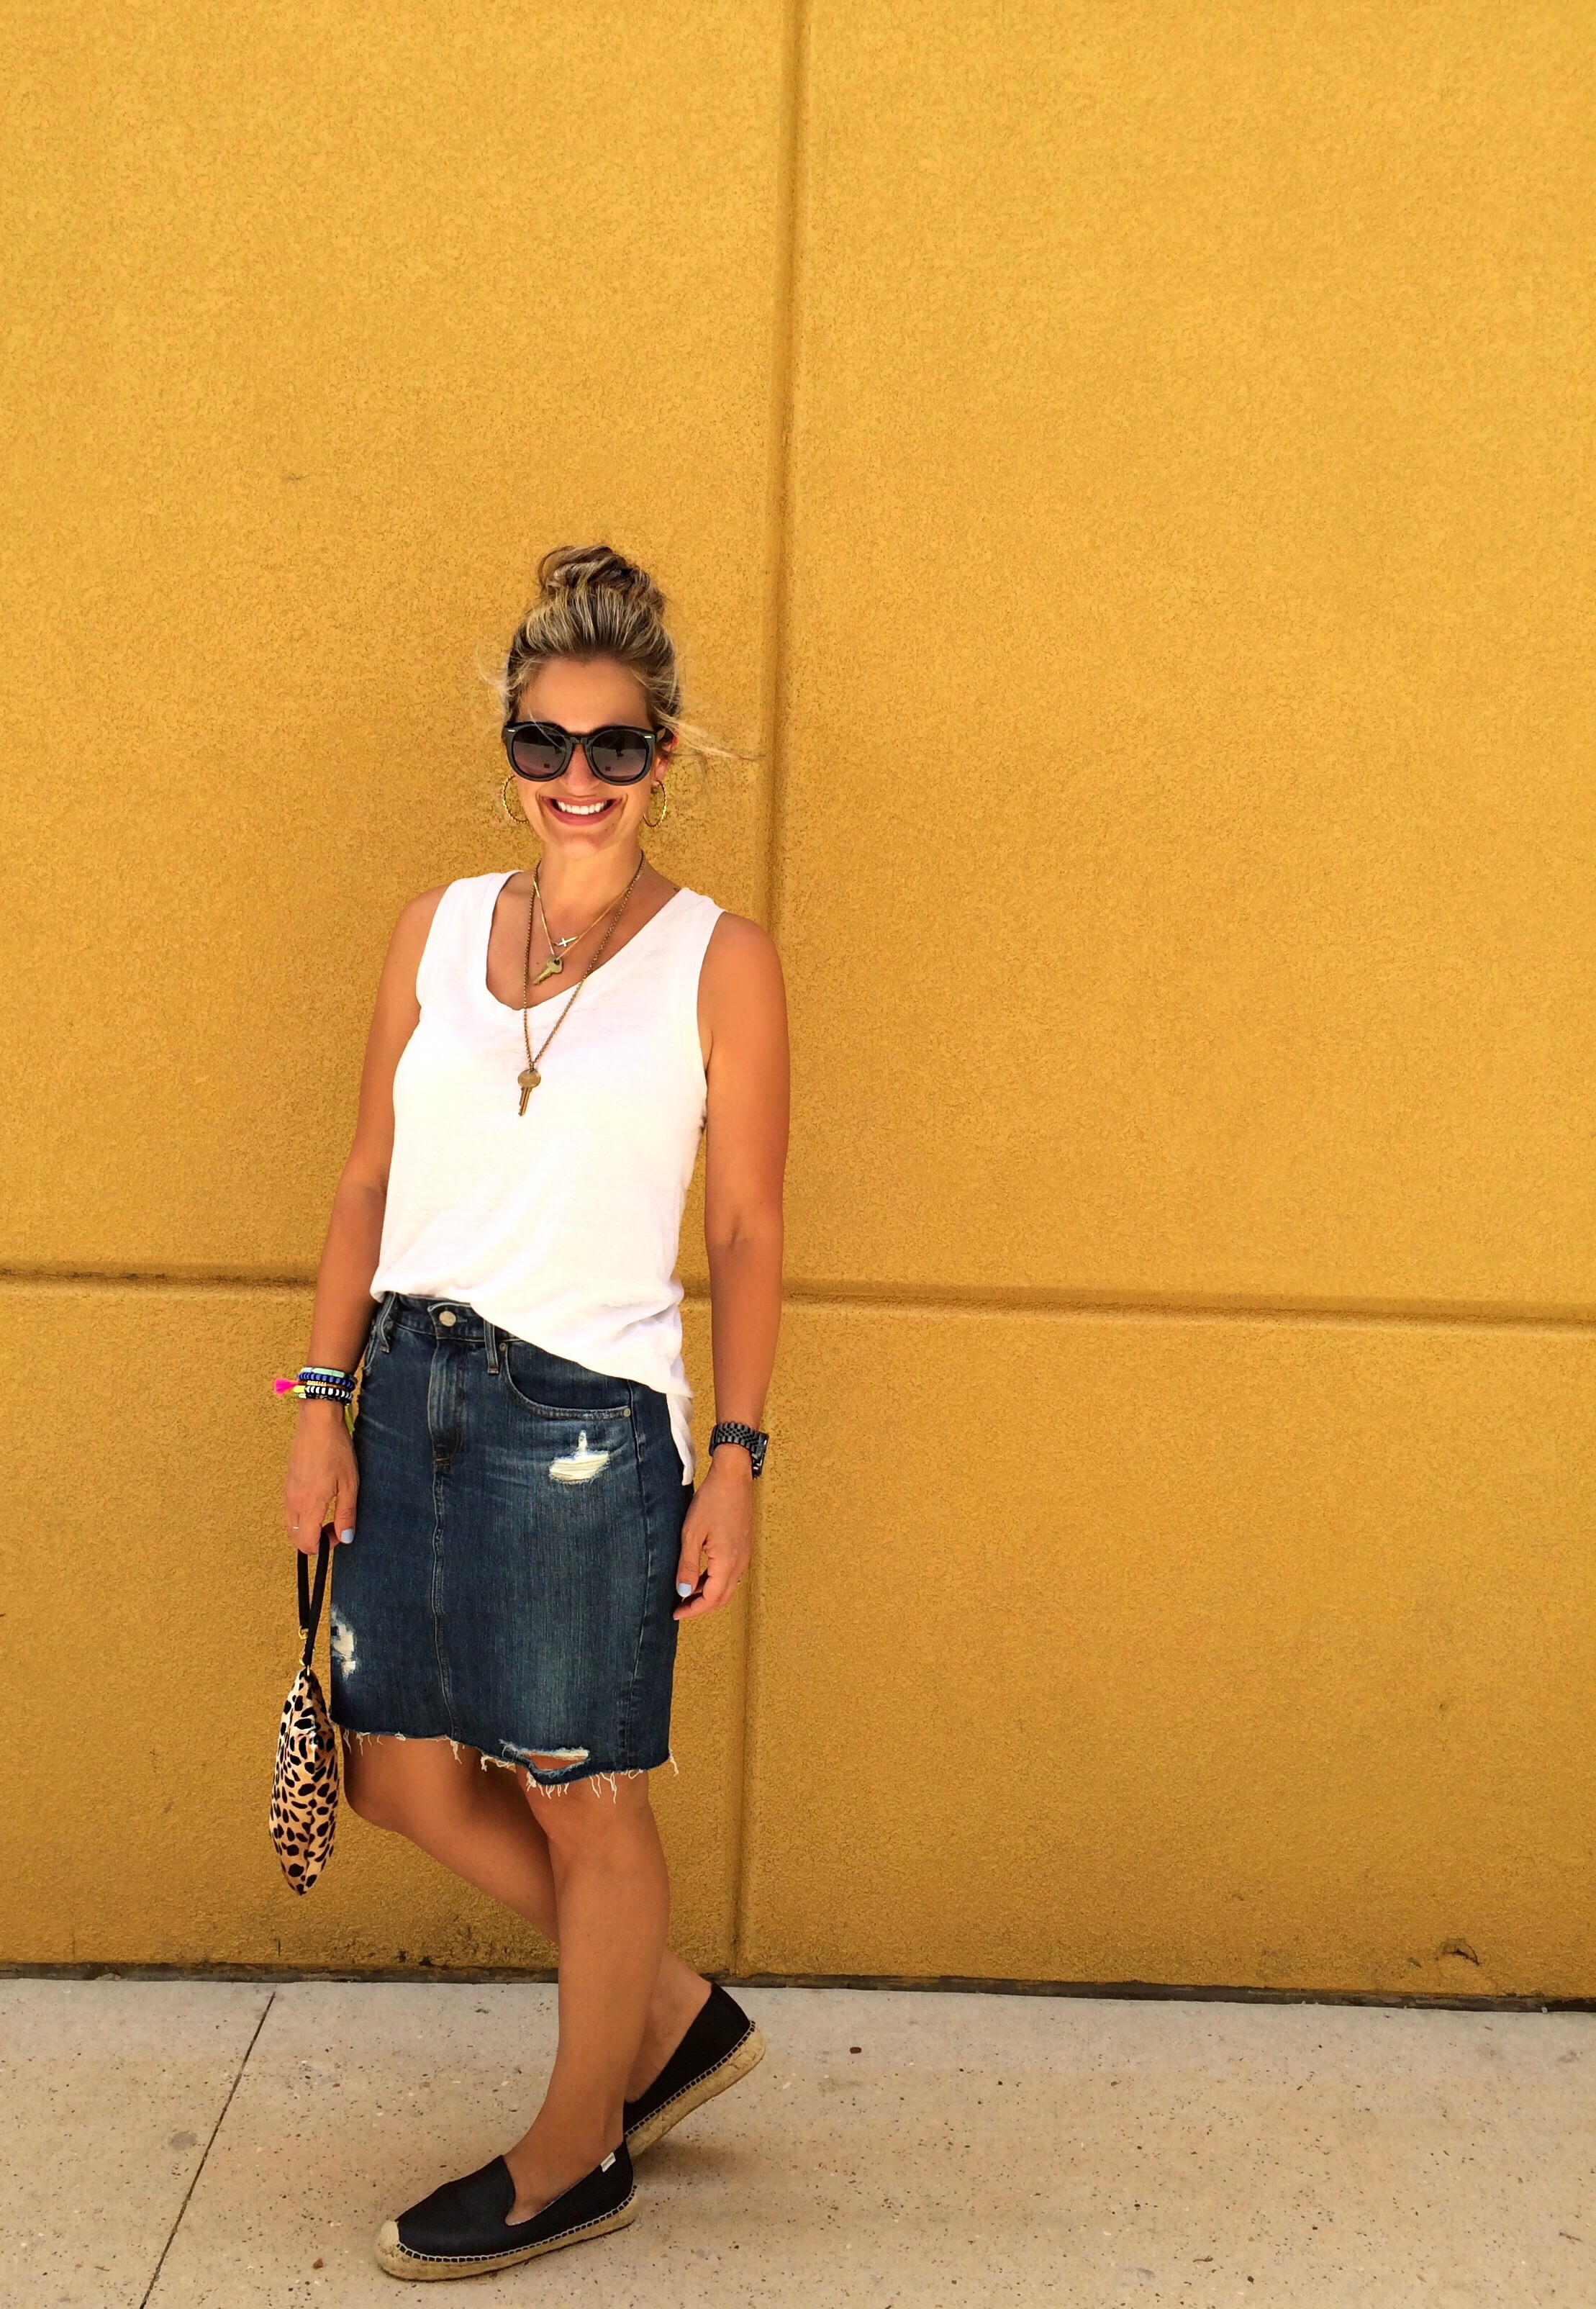 Skirt:  AG  Top: Gap similar  here  Shoes:  Soludos  Wristlet: Clare Vivier similar  here  Bracelets:  Baublebar  Earrings:  Stella&Dot  Necklaces:  The Giving Key